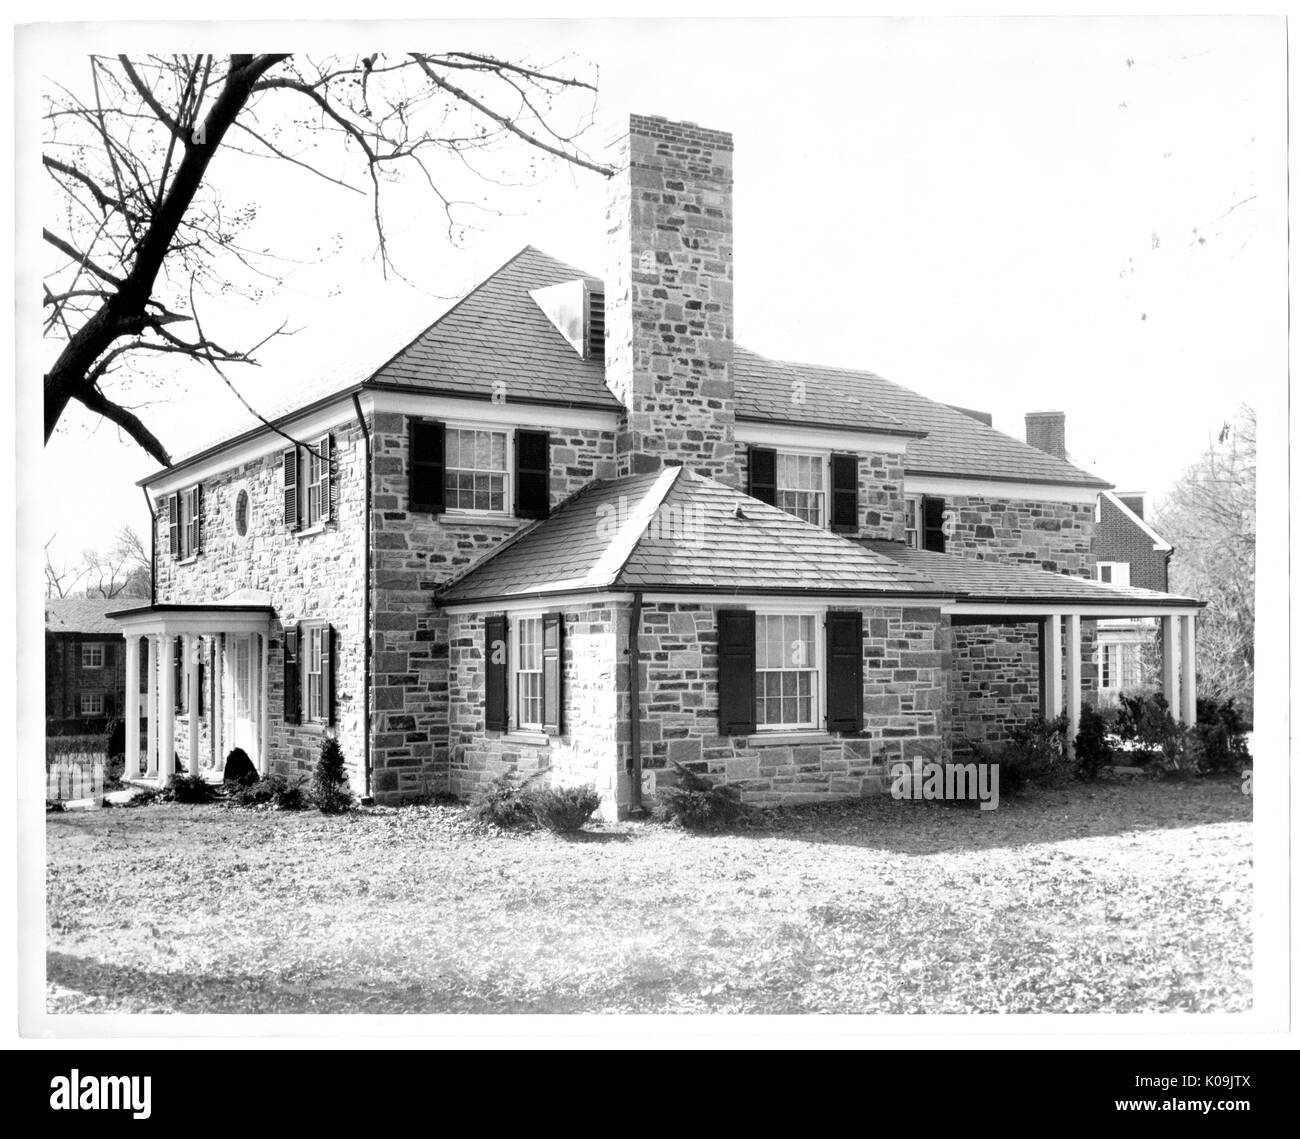 Segregation united states colored stock photos for The guilford house